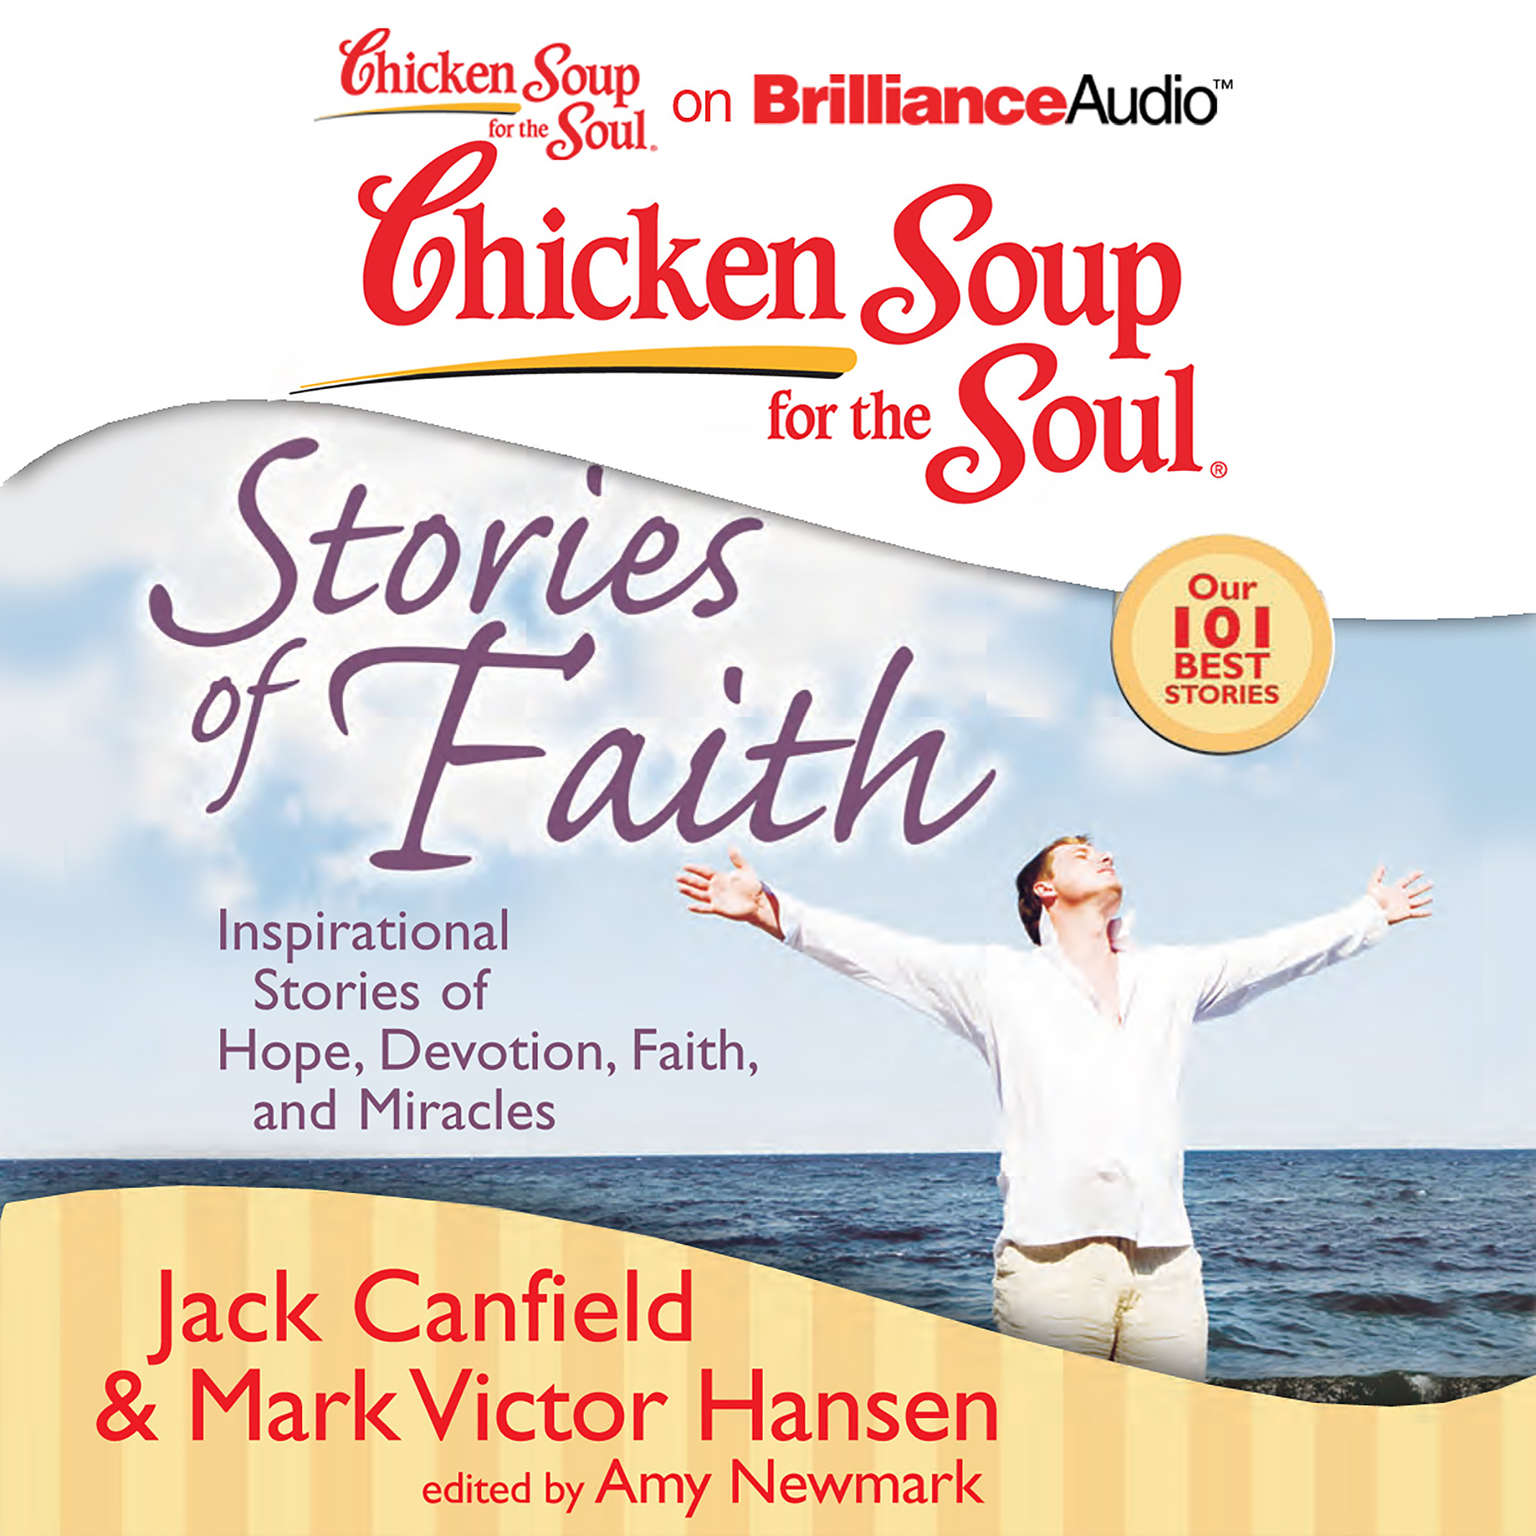 Printable Chicken Soup for the Soul: Stories of Faith: Inspirational Stories of Hope, Devotion, Faith, and Miracles Audiobook Cover Art